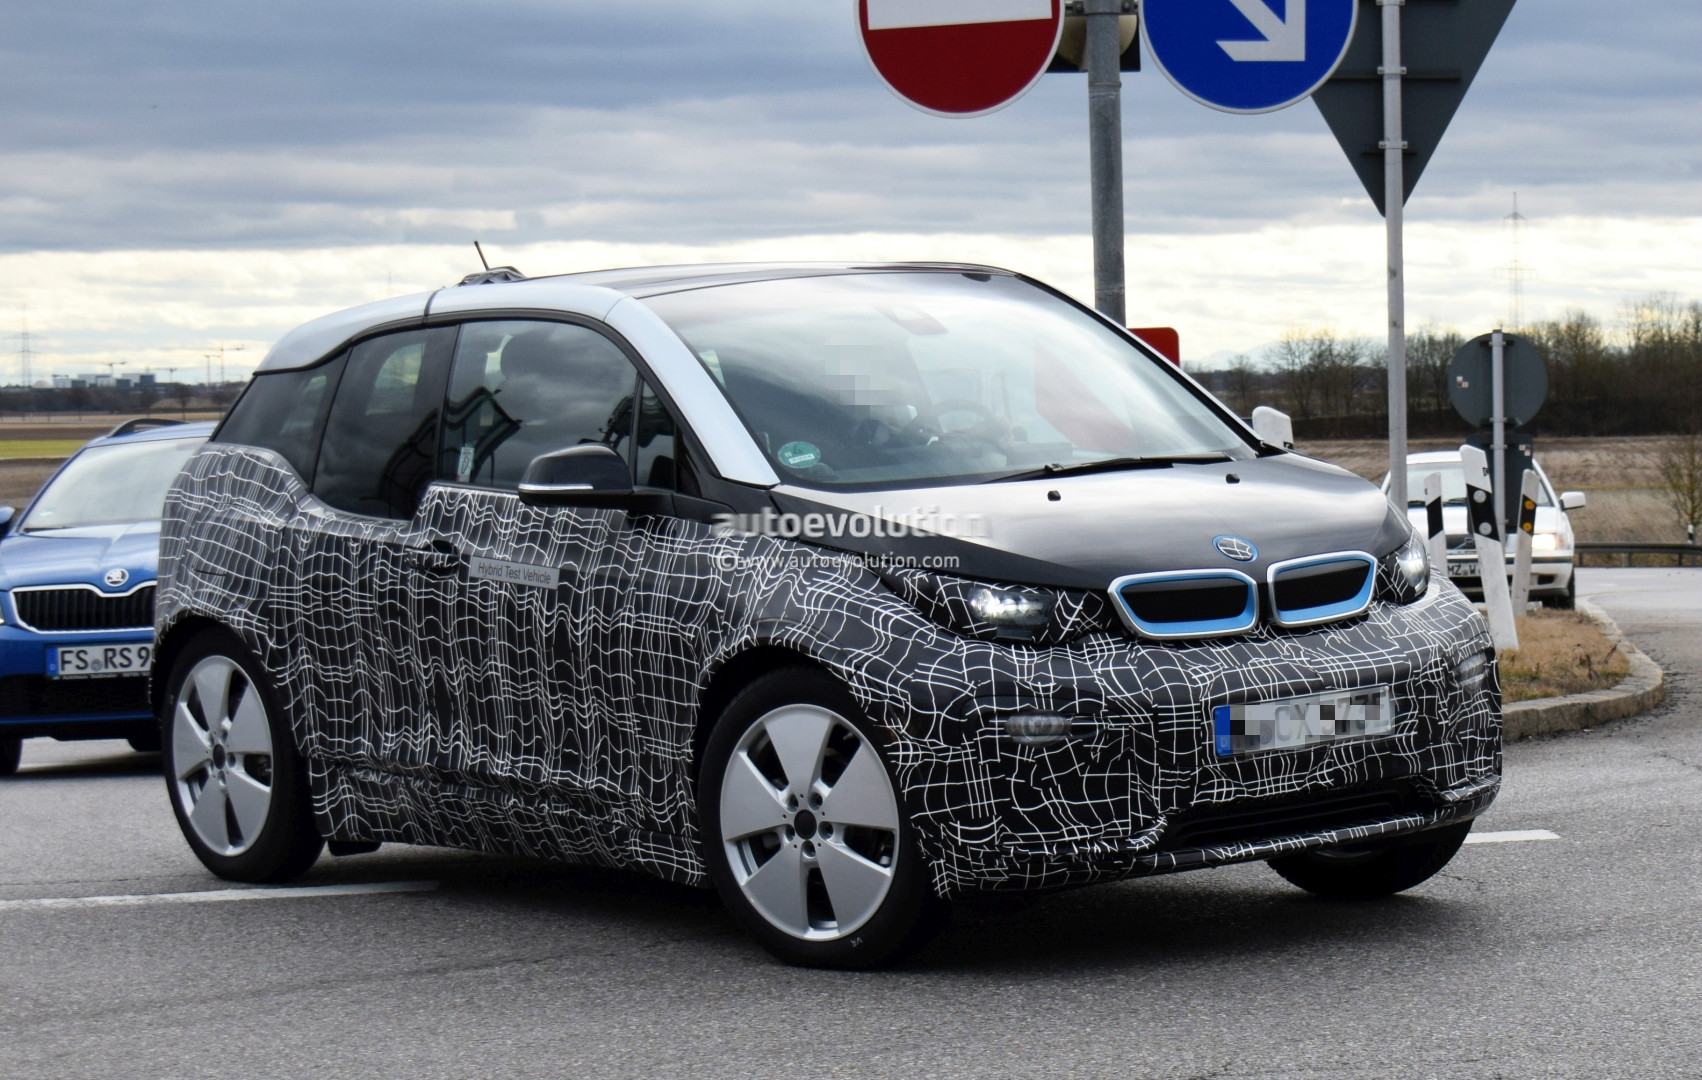 2018 bmw i3 facelift spotted in german traffic i3s electric hot hatch rides low autoevolution